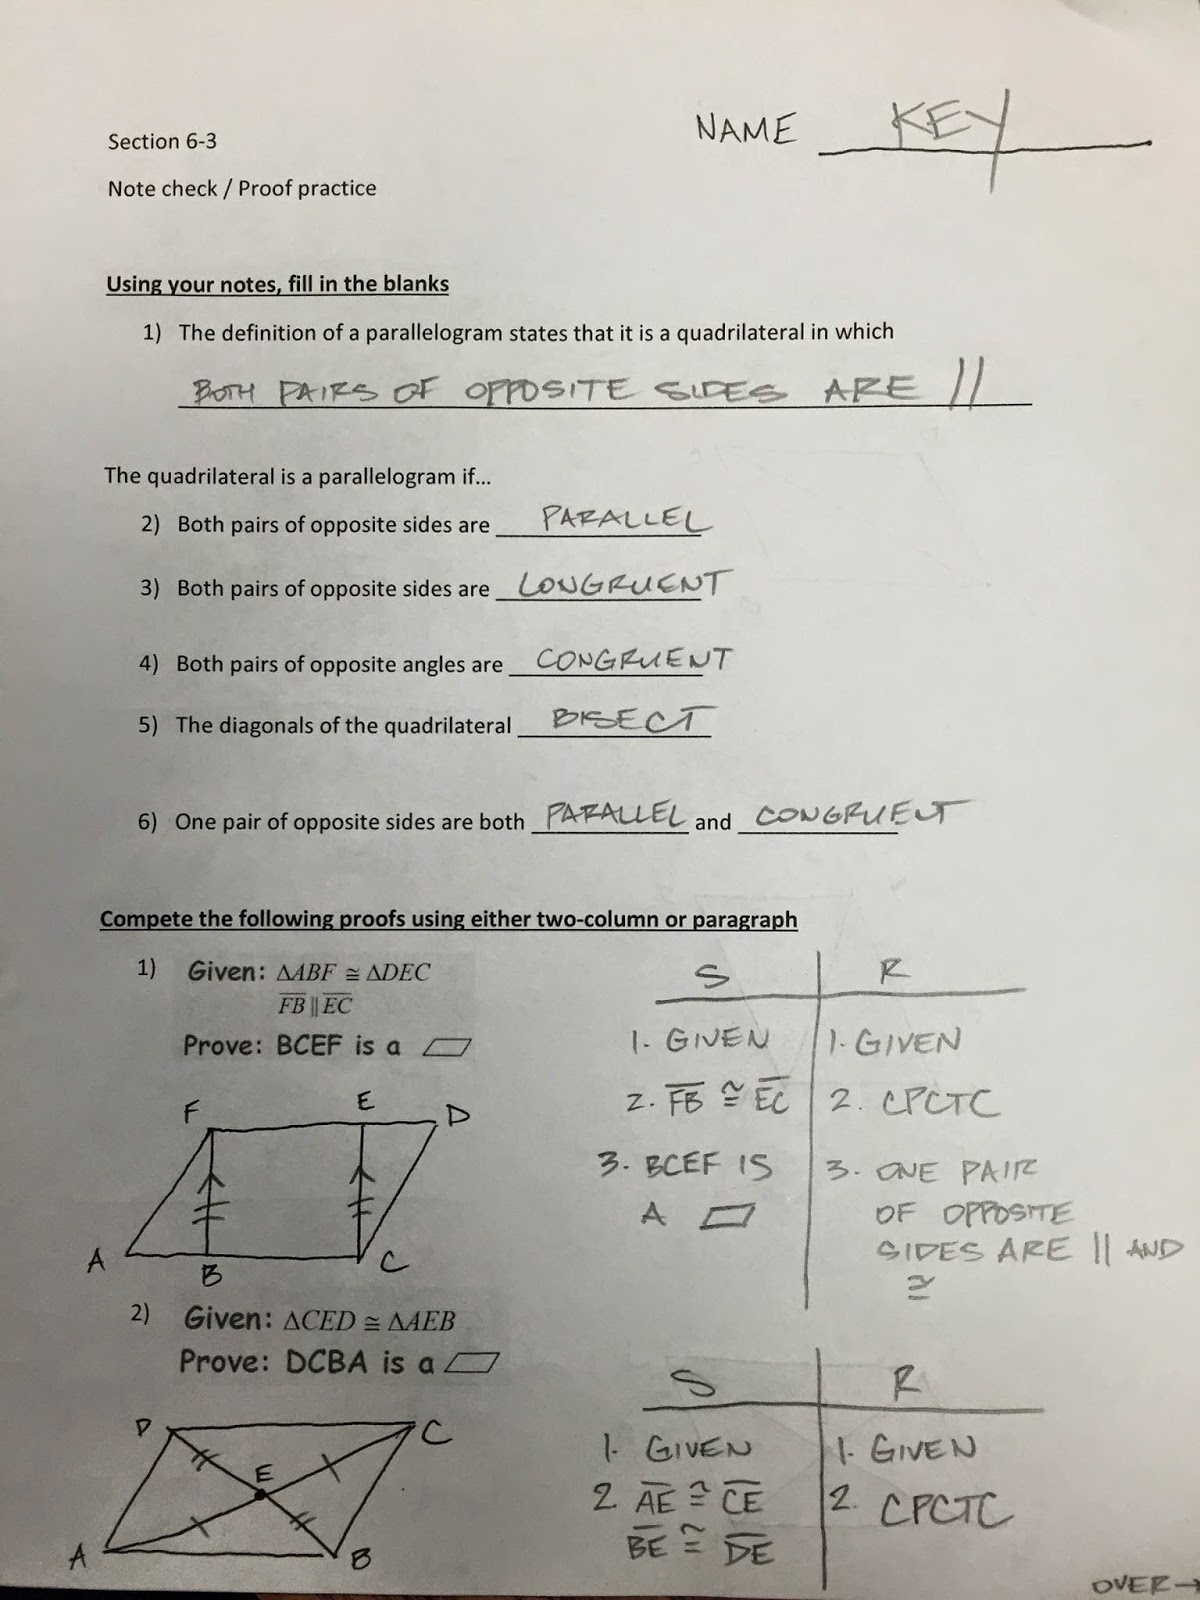 Honors Geometry - Vintage High School: Section 6-3 proofs